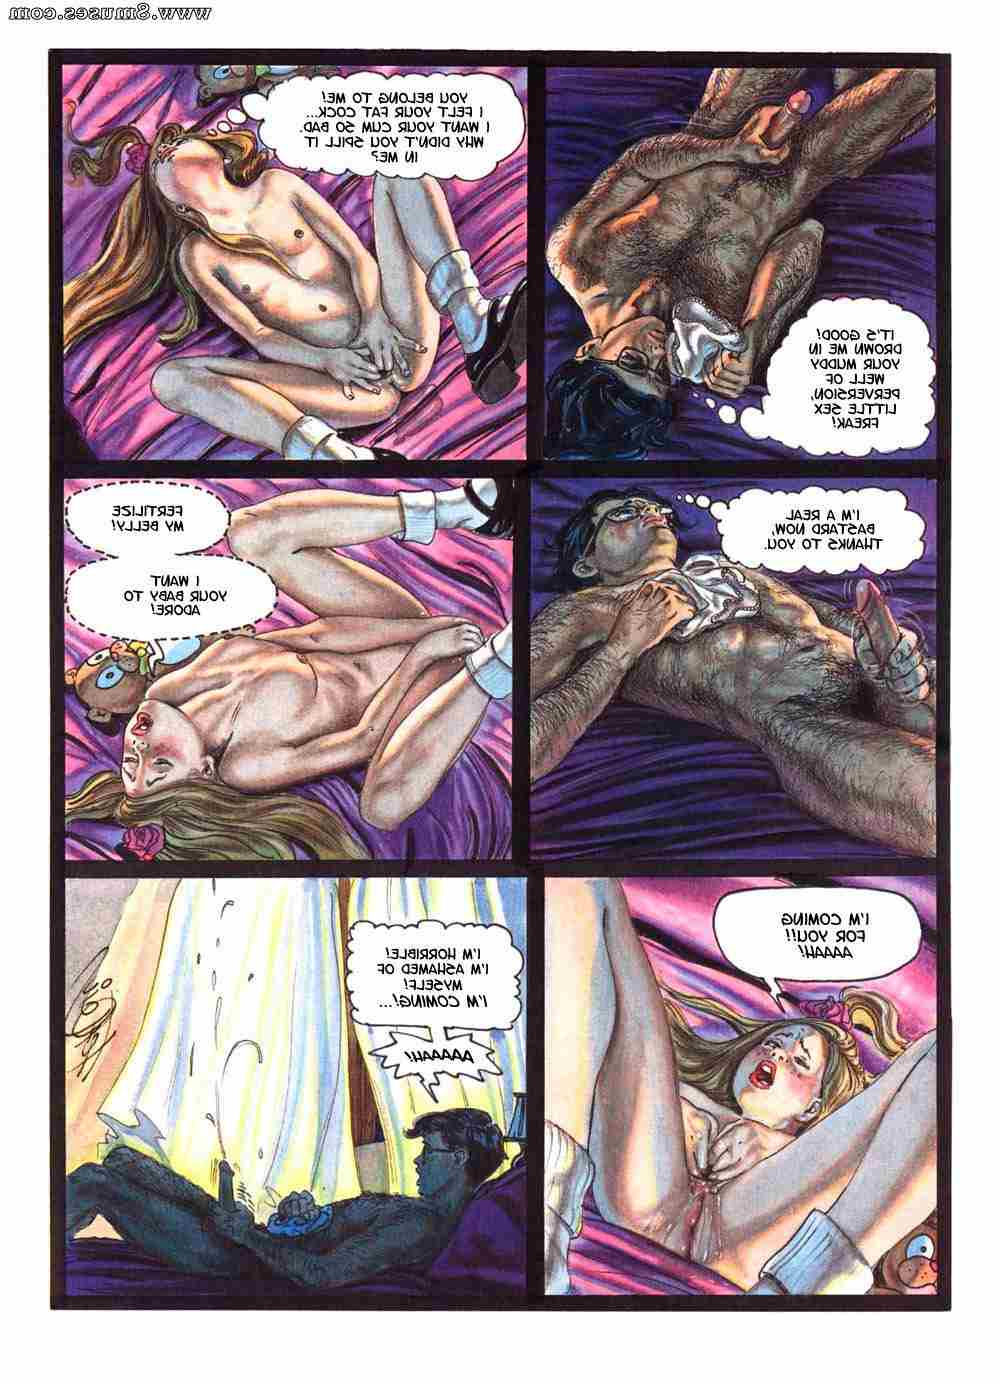 Ferocius-Comics/Forbidden-Flower Forbidden_Flower__8muses_-_Sex_and_Porn_Comics_44.jpg